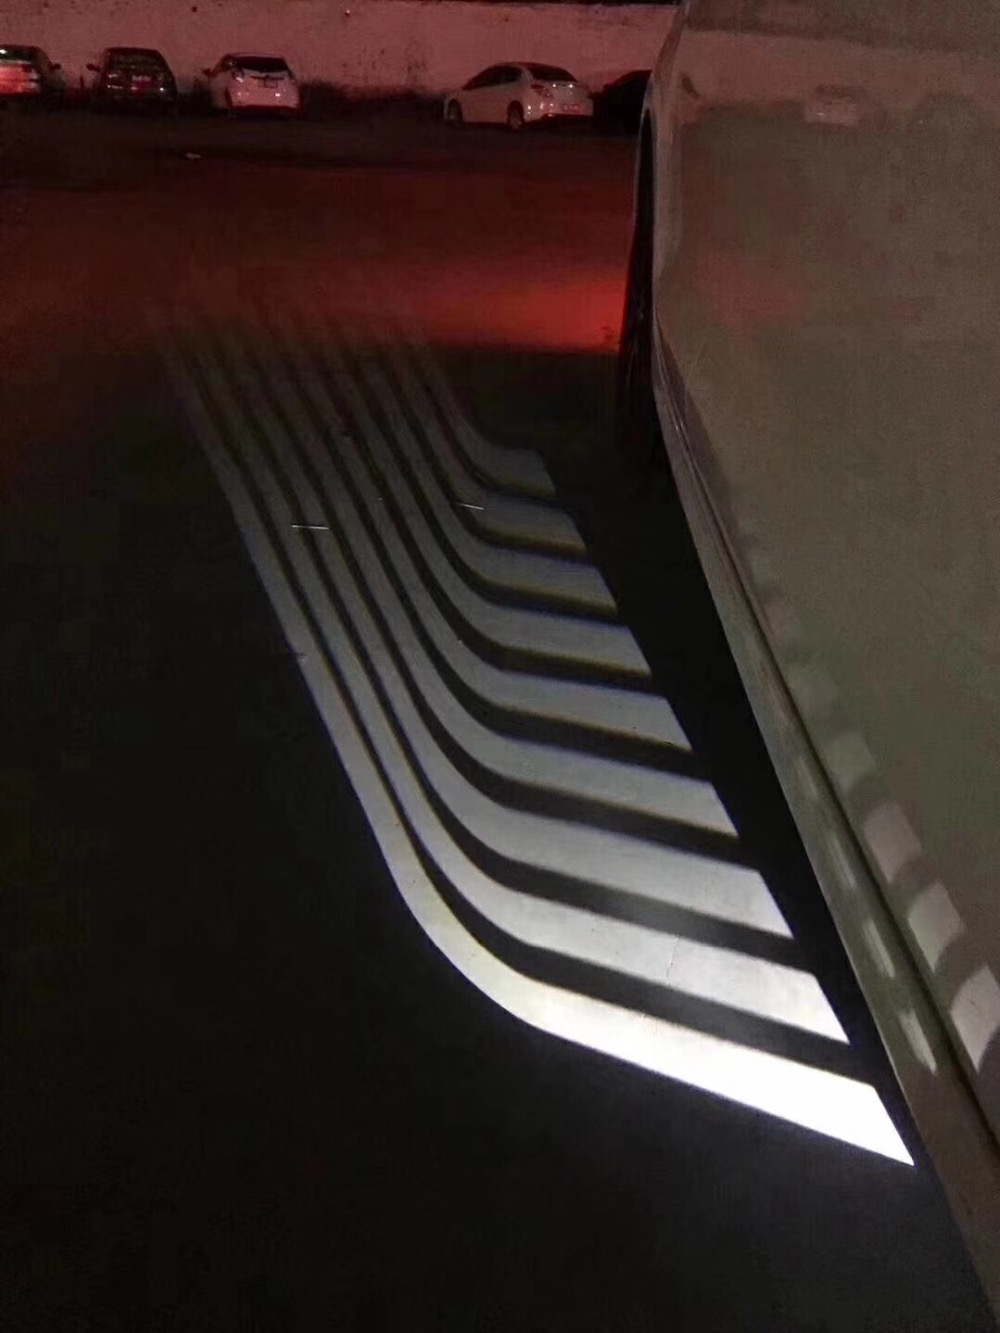 eOsuns led welcome lamp ground light for Chevrolet Astra Astro Avalanche Aveo Sonic B60 B7 Beretta Blazer C1500 C2500 C35 C3500 eosuns led welcome lamp ground light for ford cft8000 cl9000 clt9000 club wagon contour cougar country squire courier